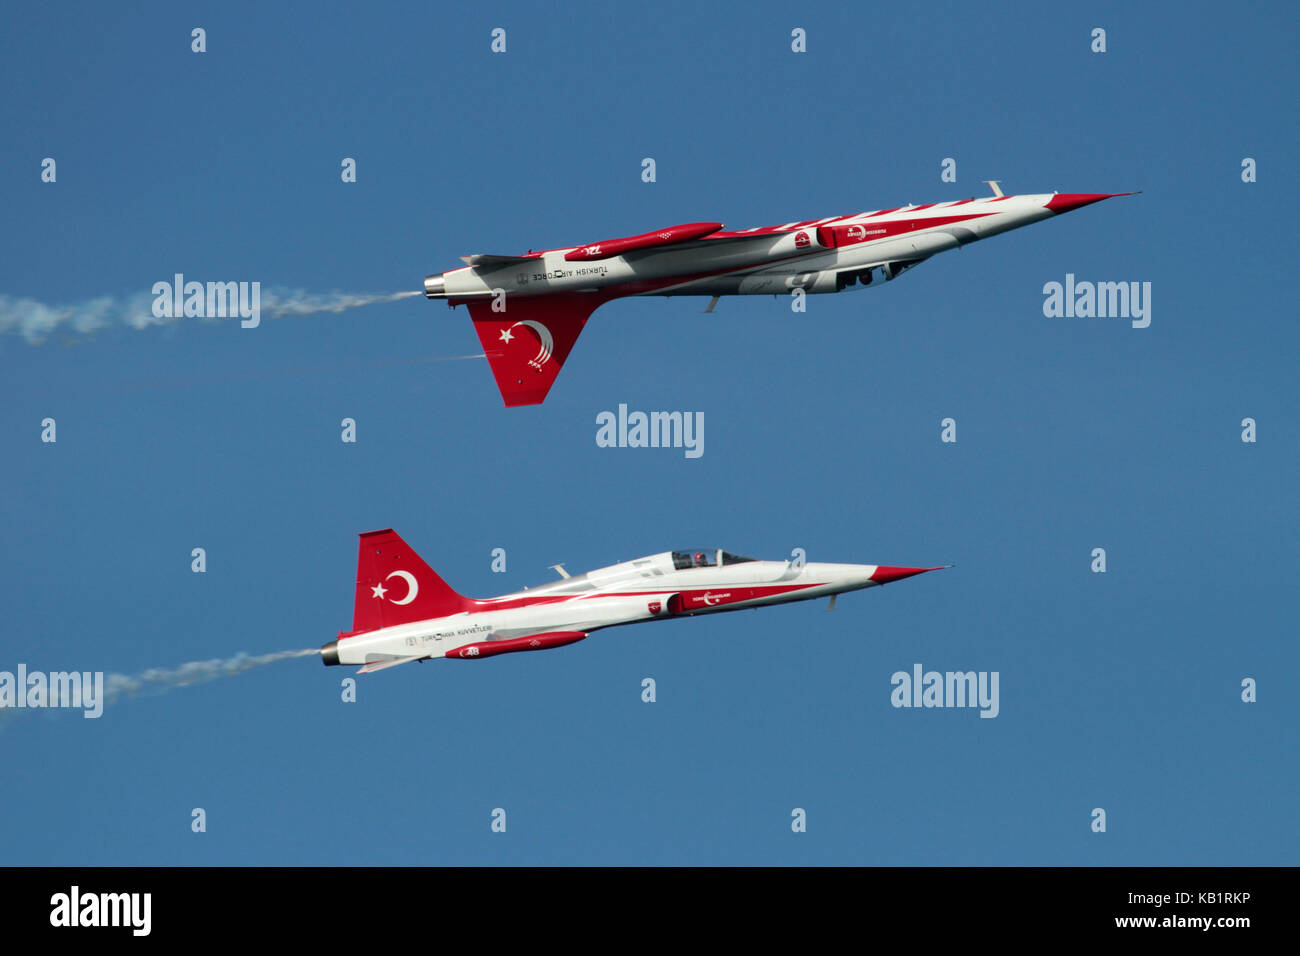 Two NF-5 jet fighters of the Turkish Stars display team (derivatives of the Northrop F-5A) during an airshow performance - Stock Image